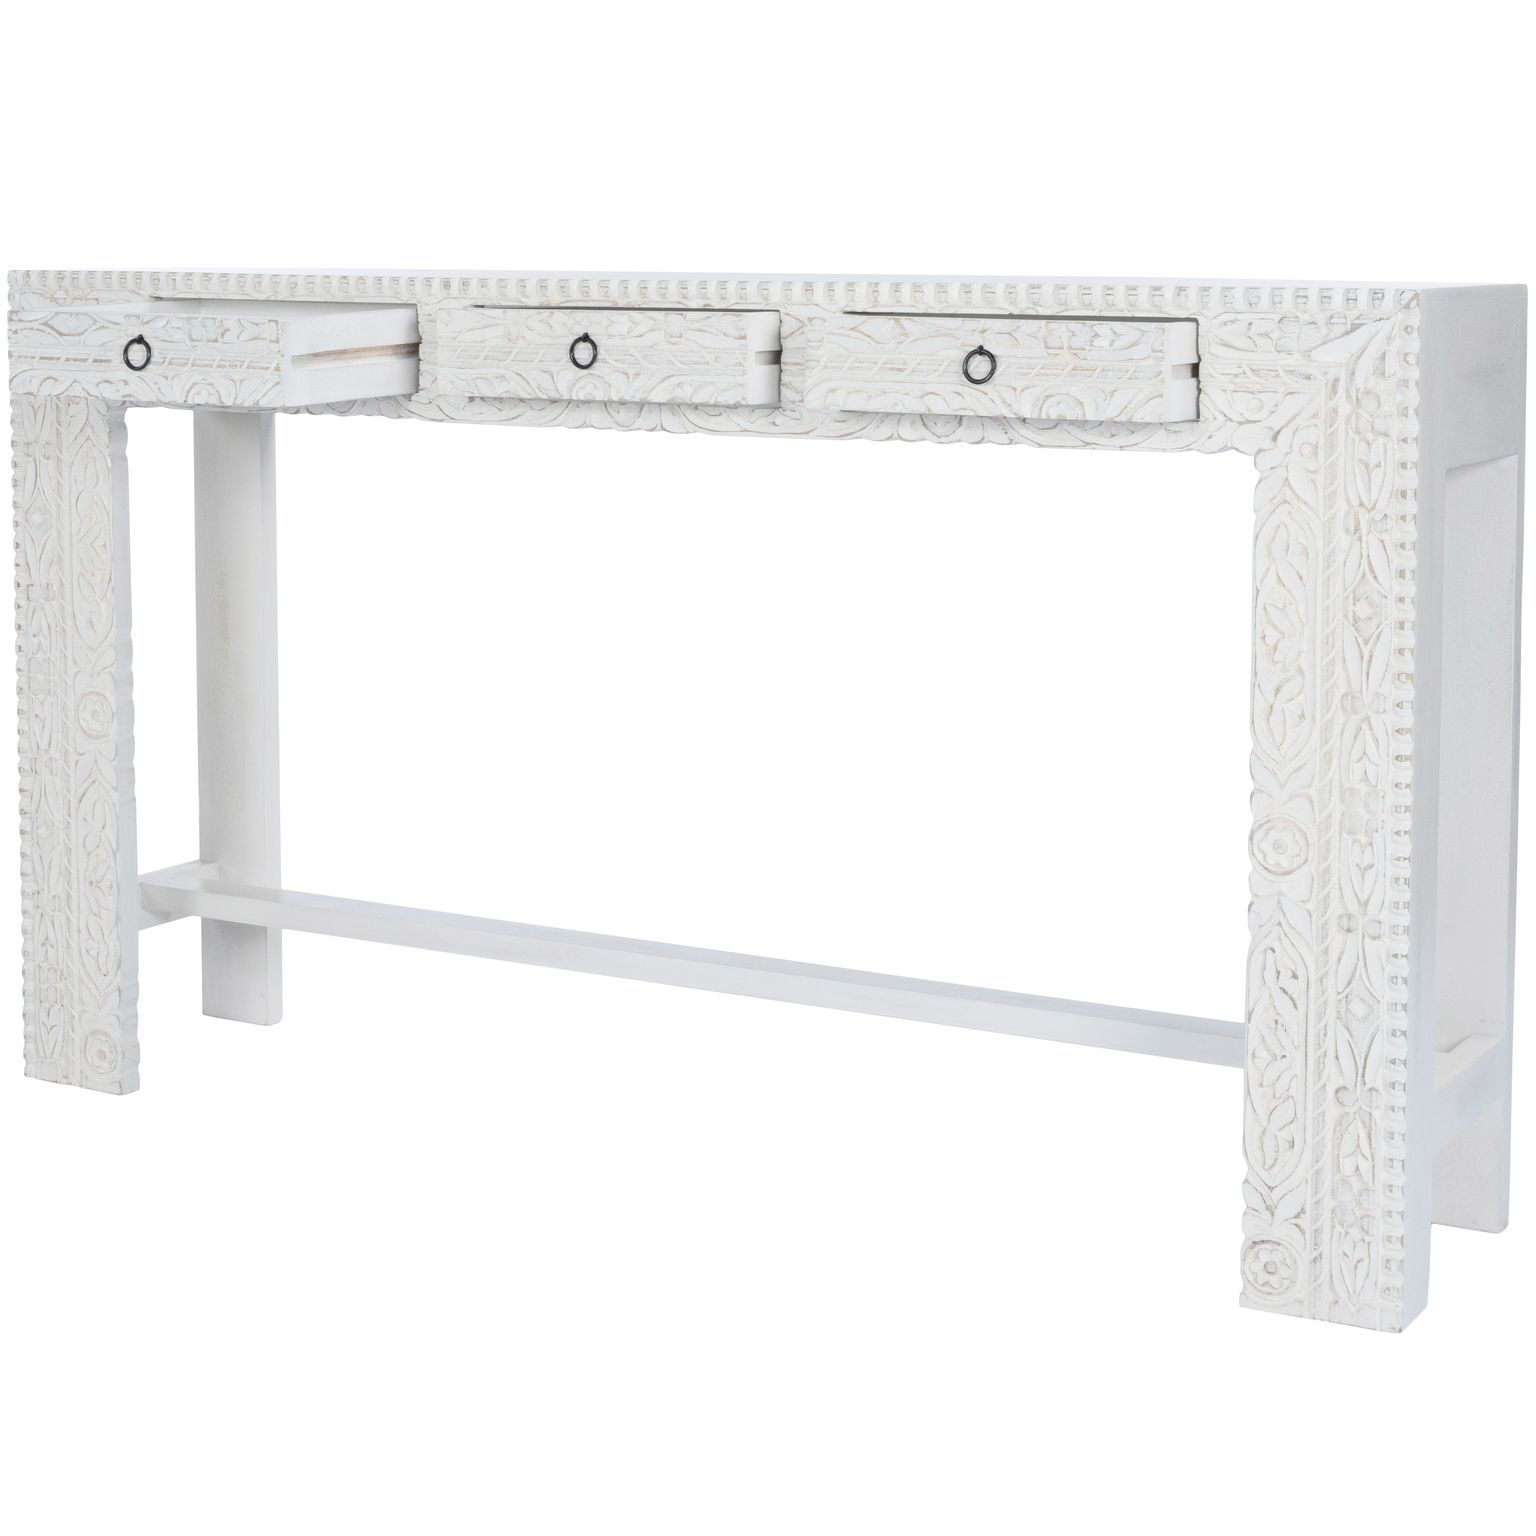 Magnolia White Washed Carved Wood Console Entry Table with three drawers Janta Butler Specialty 2069290